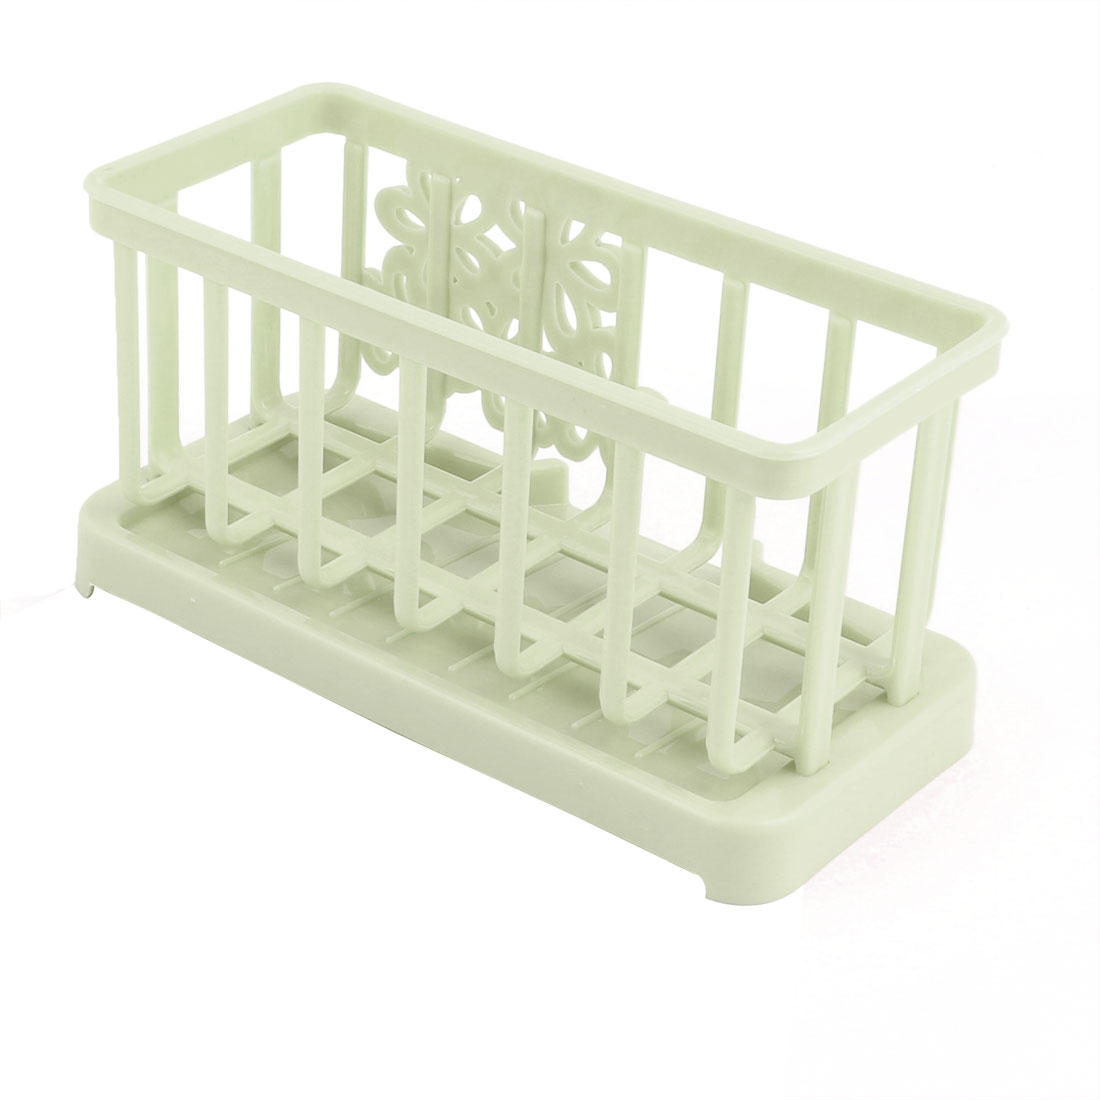 Kitchen Plastic Rectangle Cleaning Tool Brush Sink Suction Holder Light Green - image 2 de 4